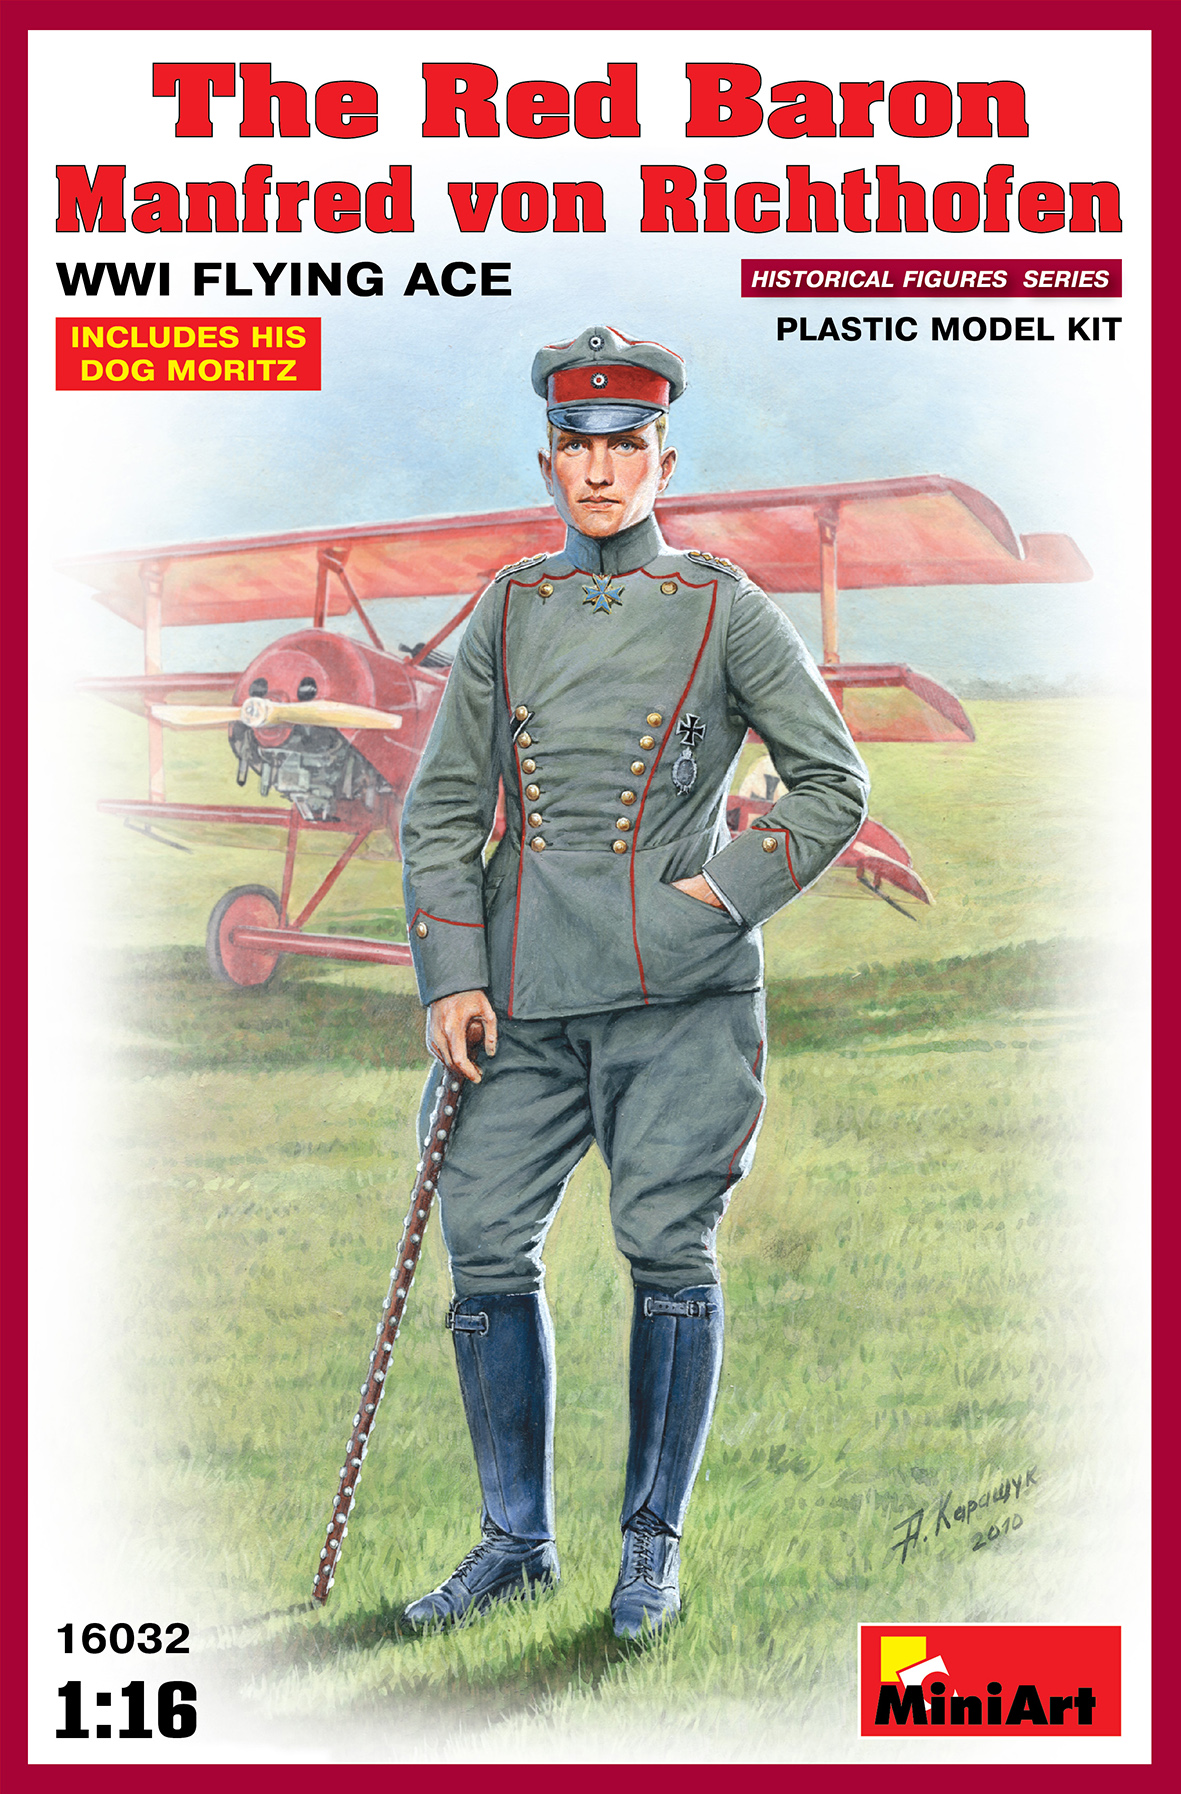 16032 THE RED BARON Manfred von Richthofen WWI FLYING ACE